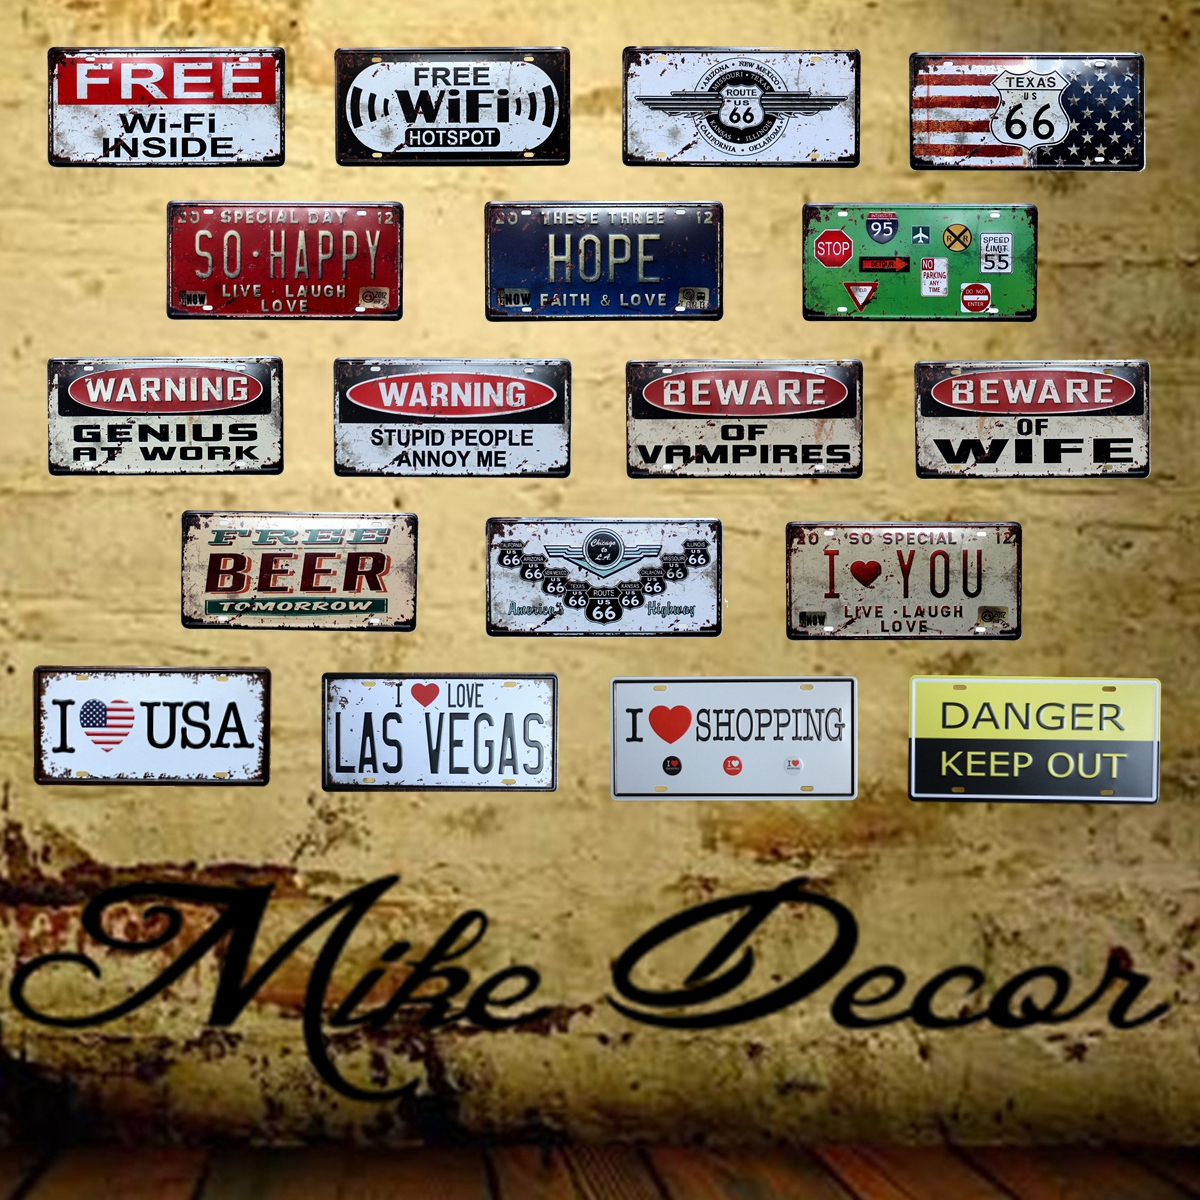 [Mike86] 2017 Baru WiFI Route66 Logam Sign Antique Craft Bar Rumah Tin Wall Plak Dekorasi 30 * 15 CM FG-113